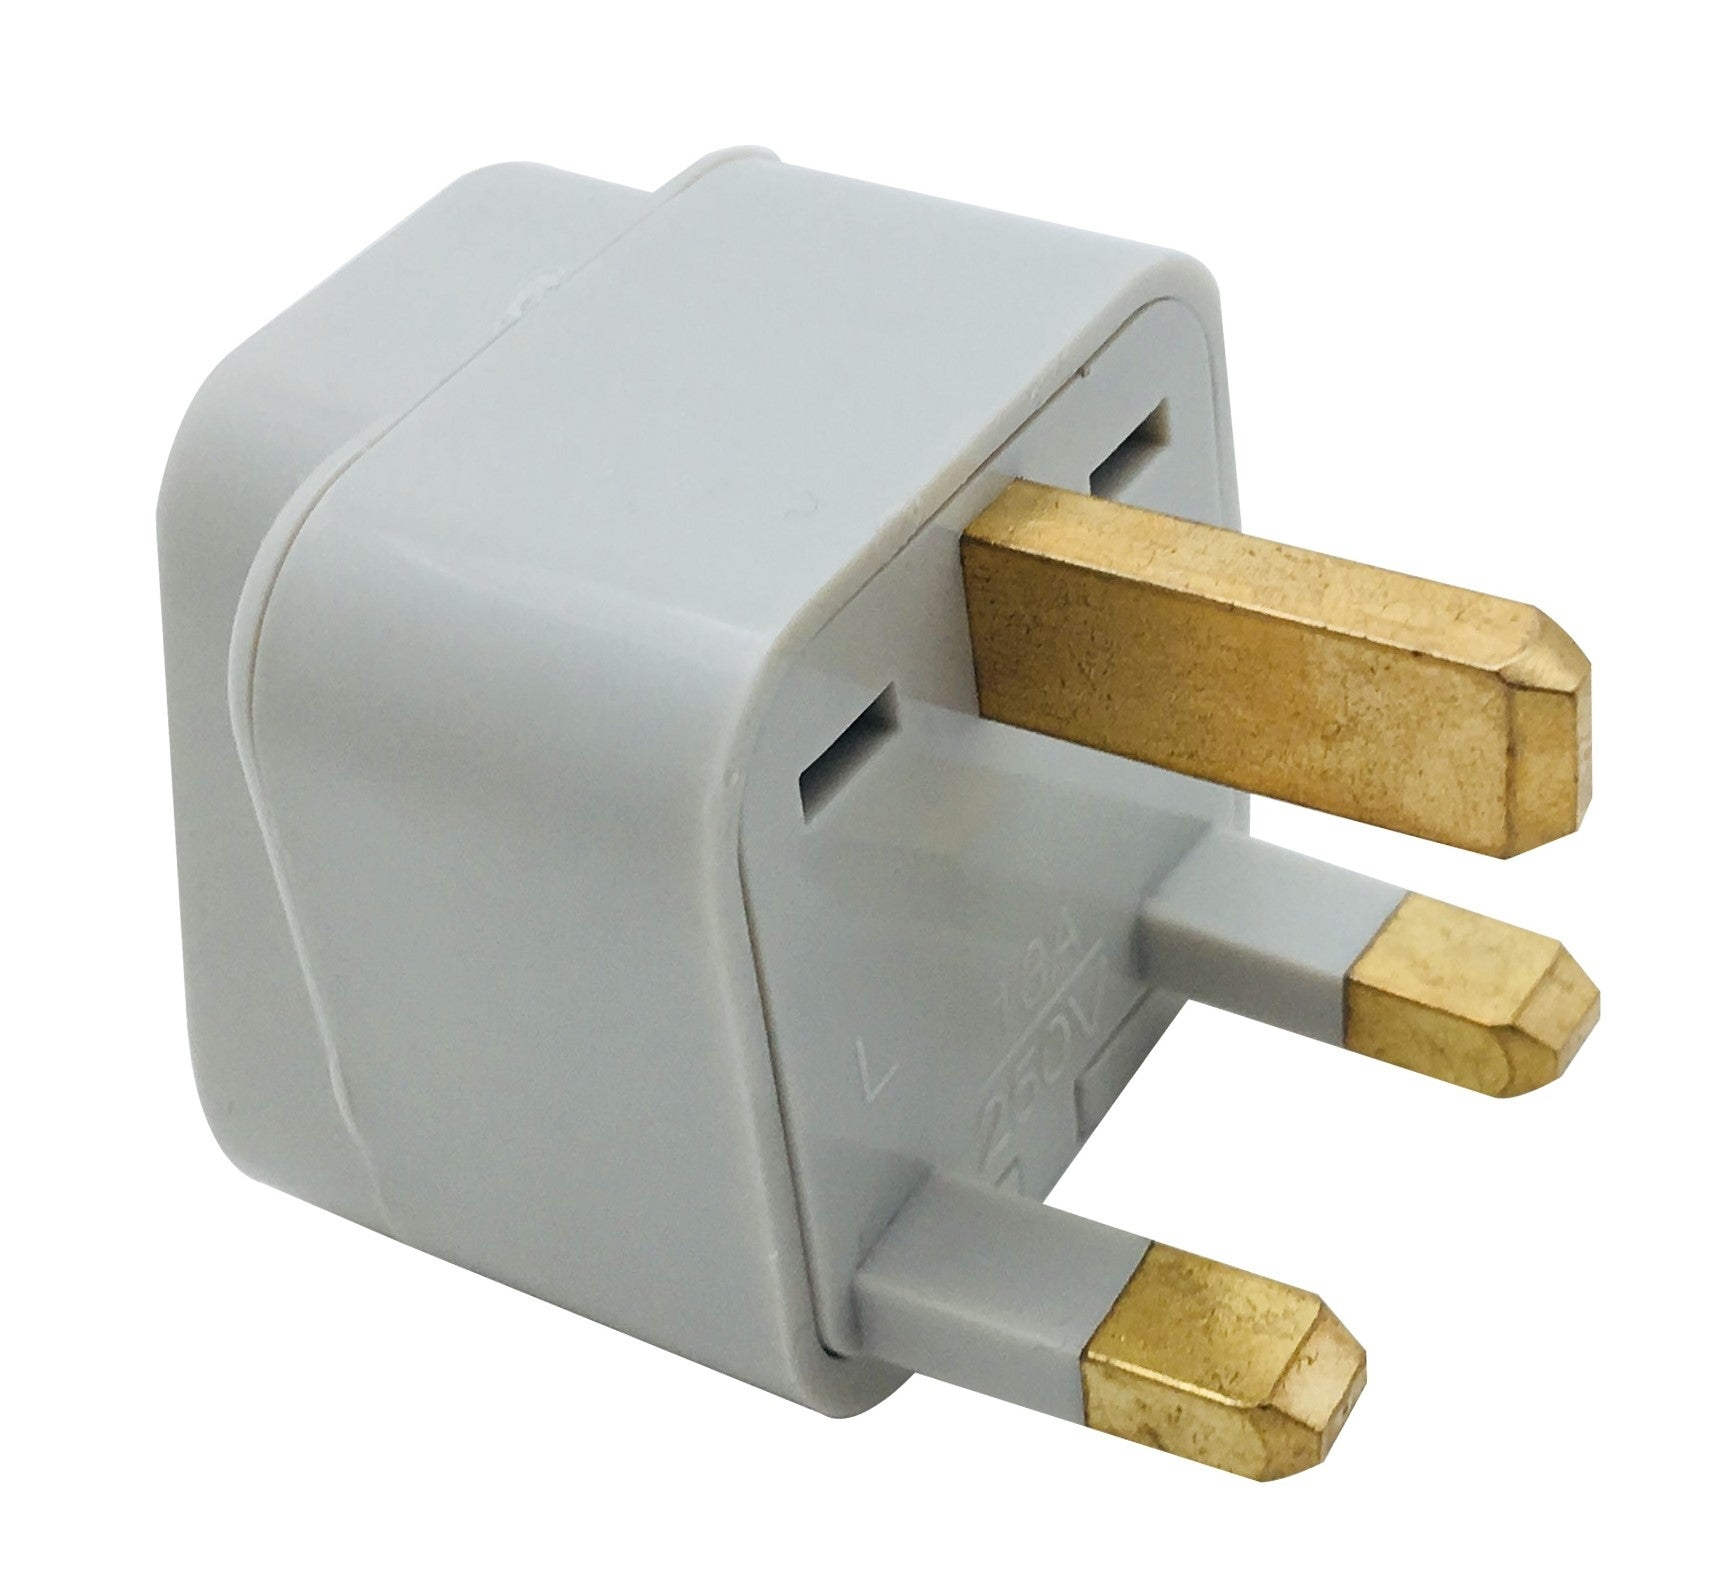 42-0302 Universal Power Plug Adapter: Rectangular blade plug